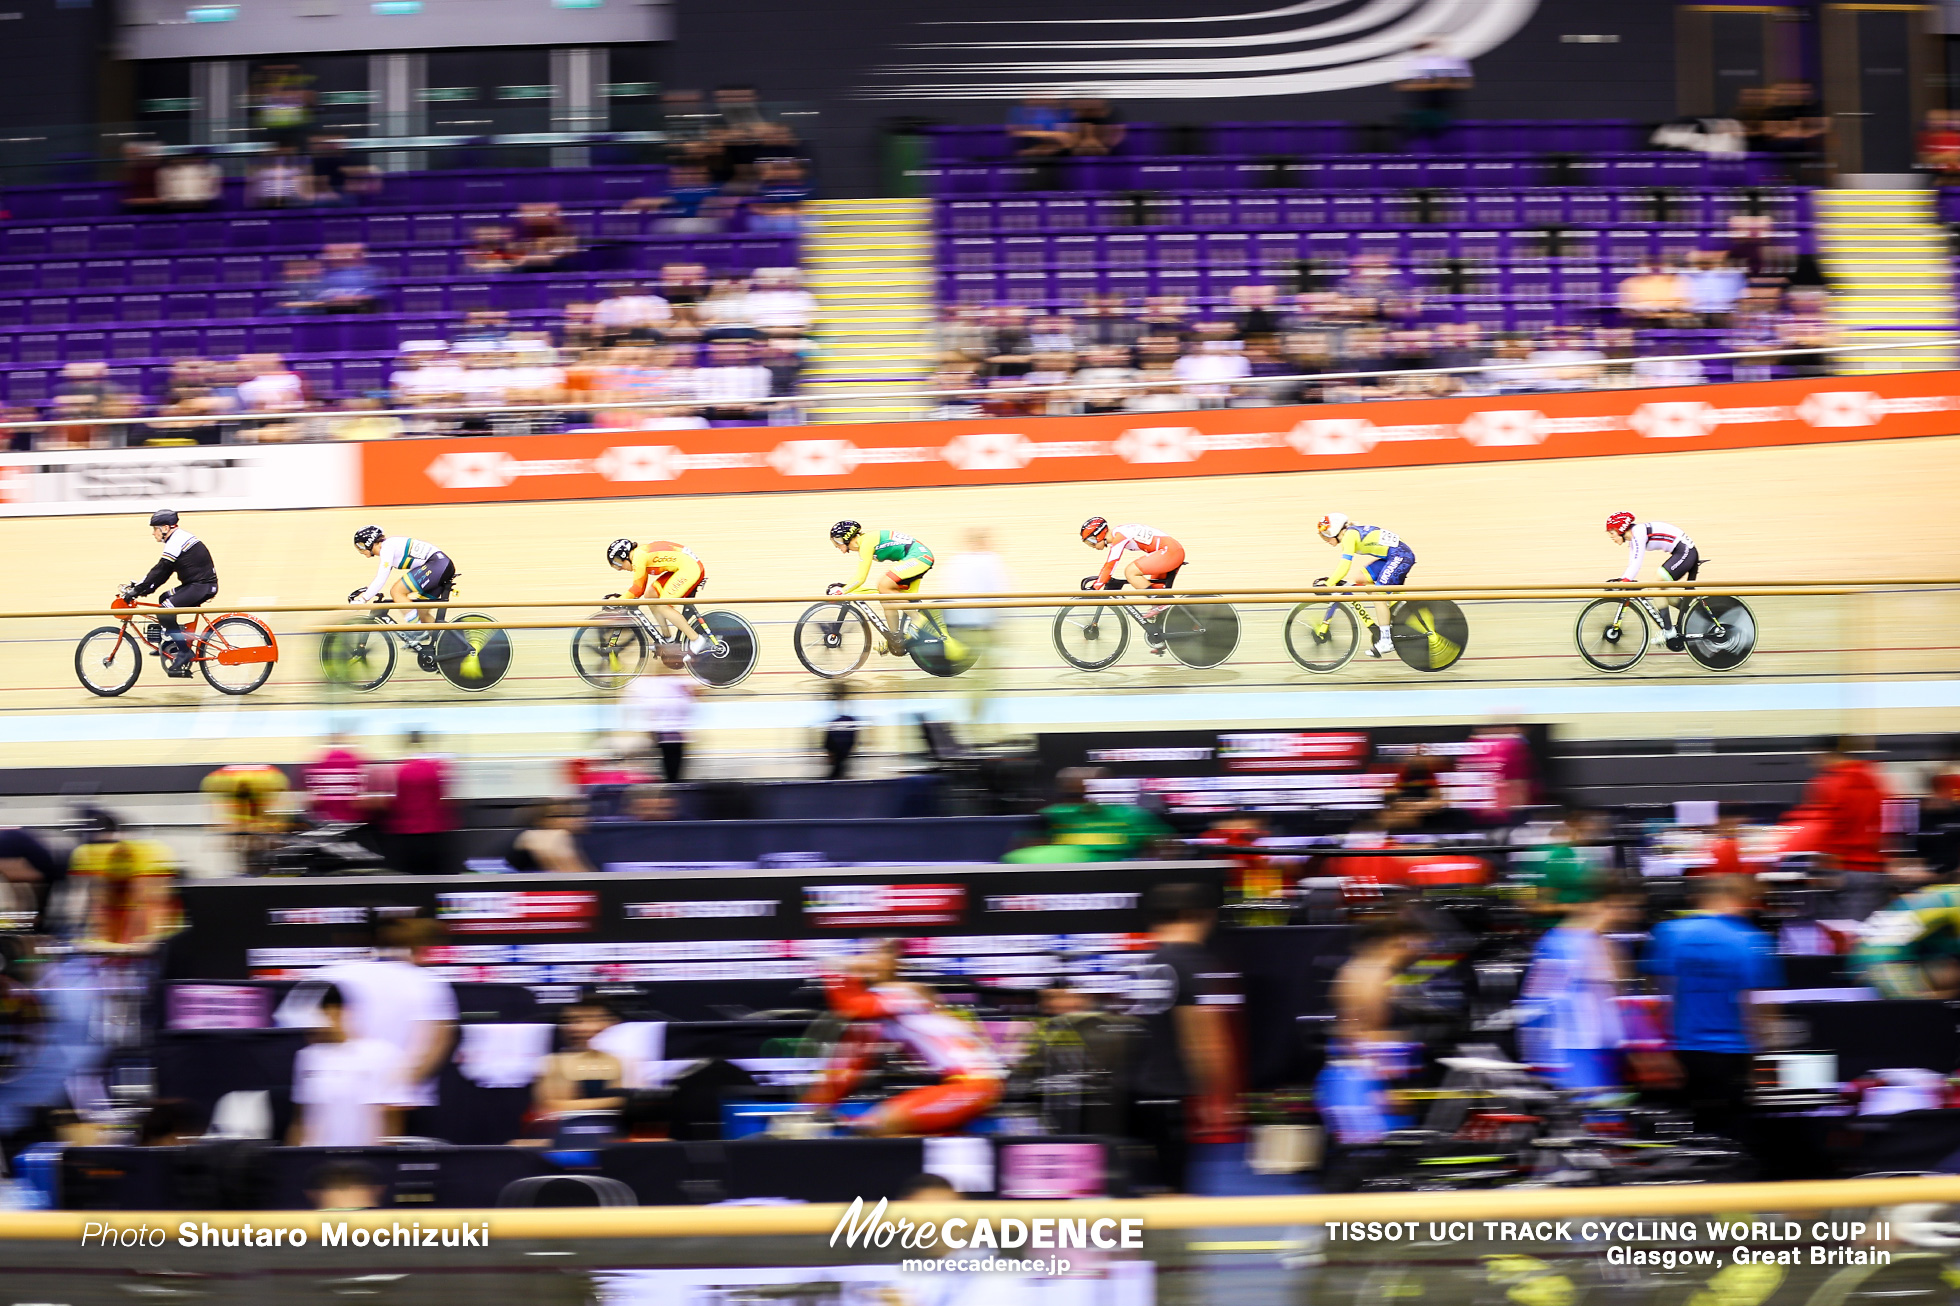 1st Round / Women's Keirin / TISSOT UCI TRACK CYCLING WORLD CUP II, Glasgow, Great Britain